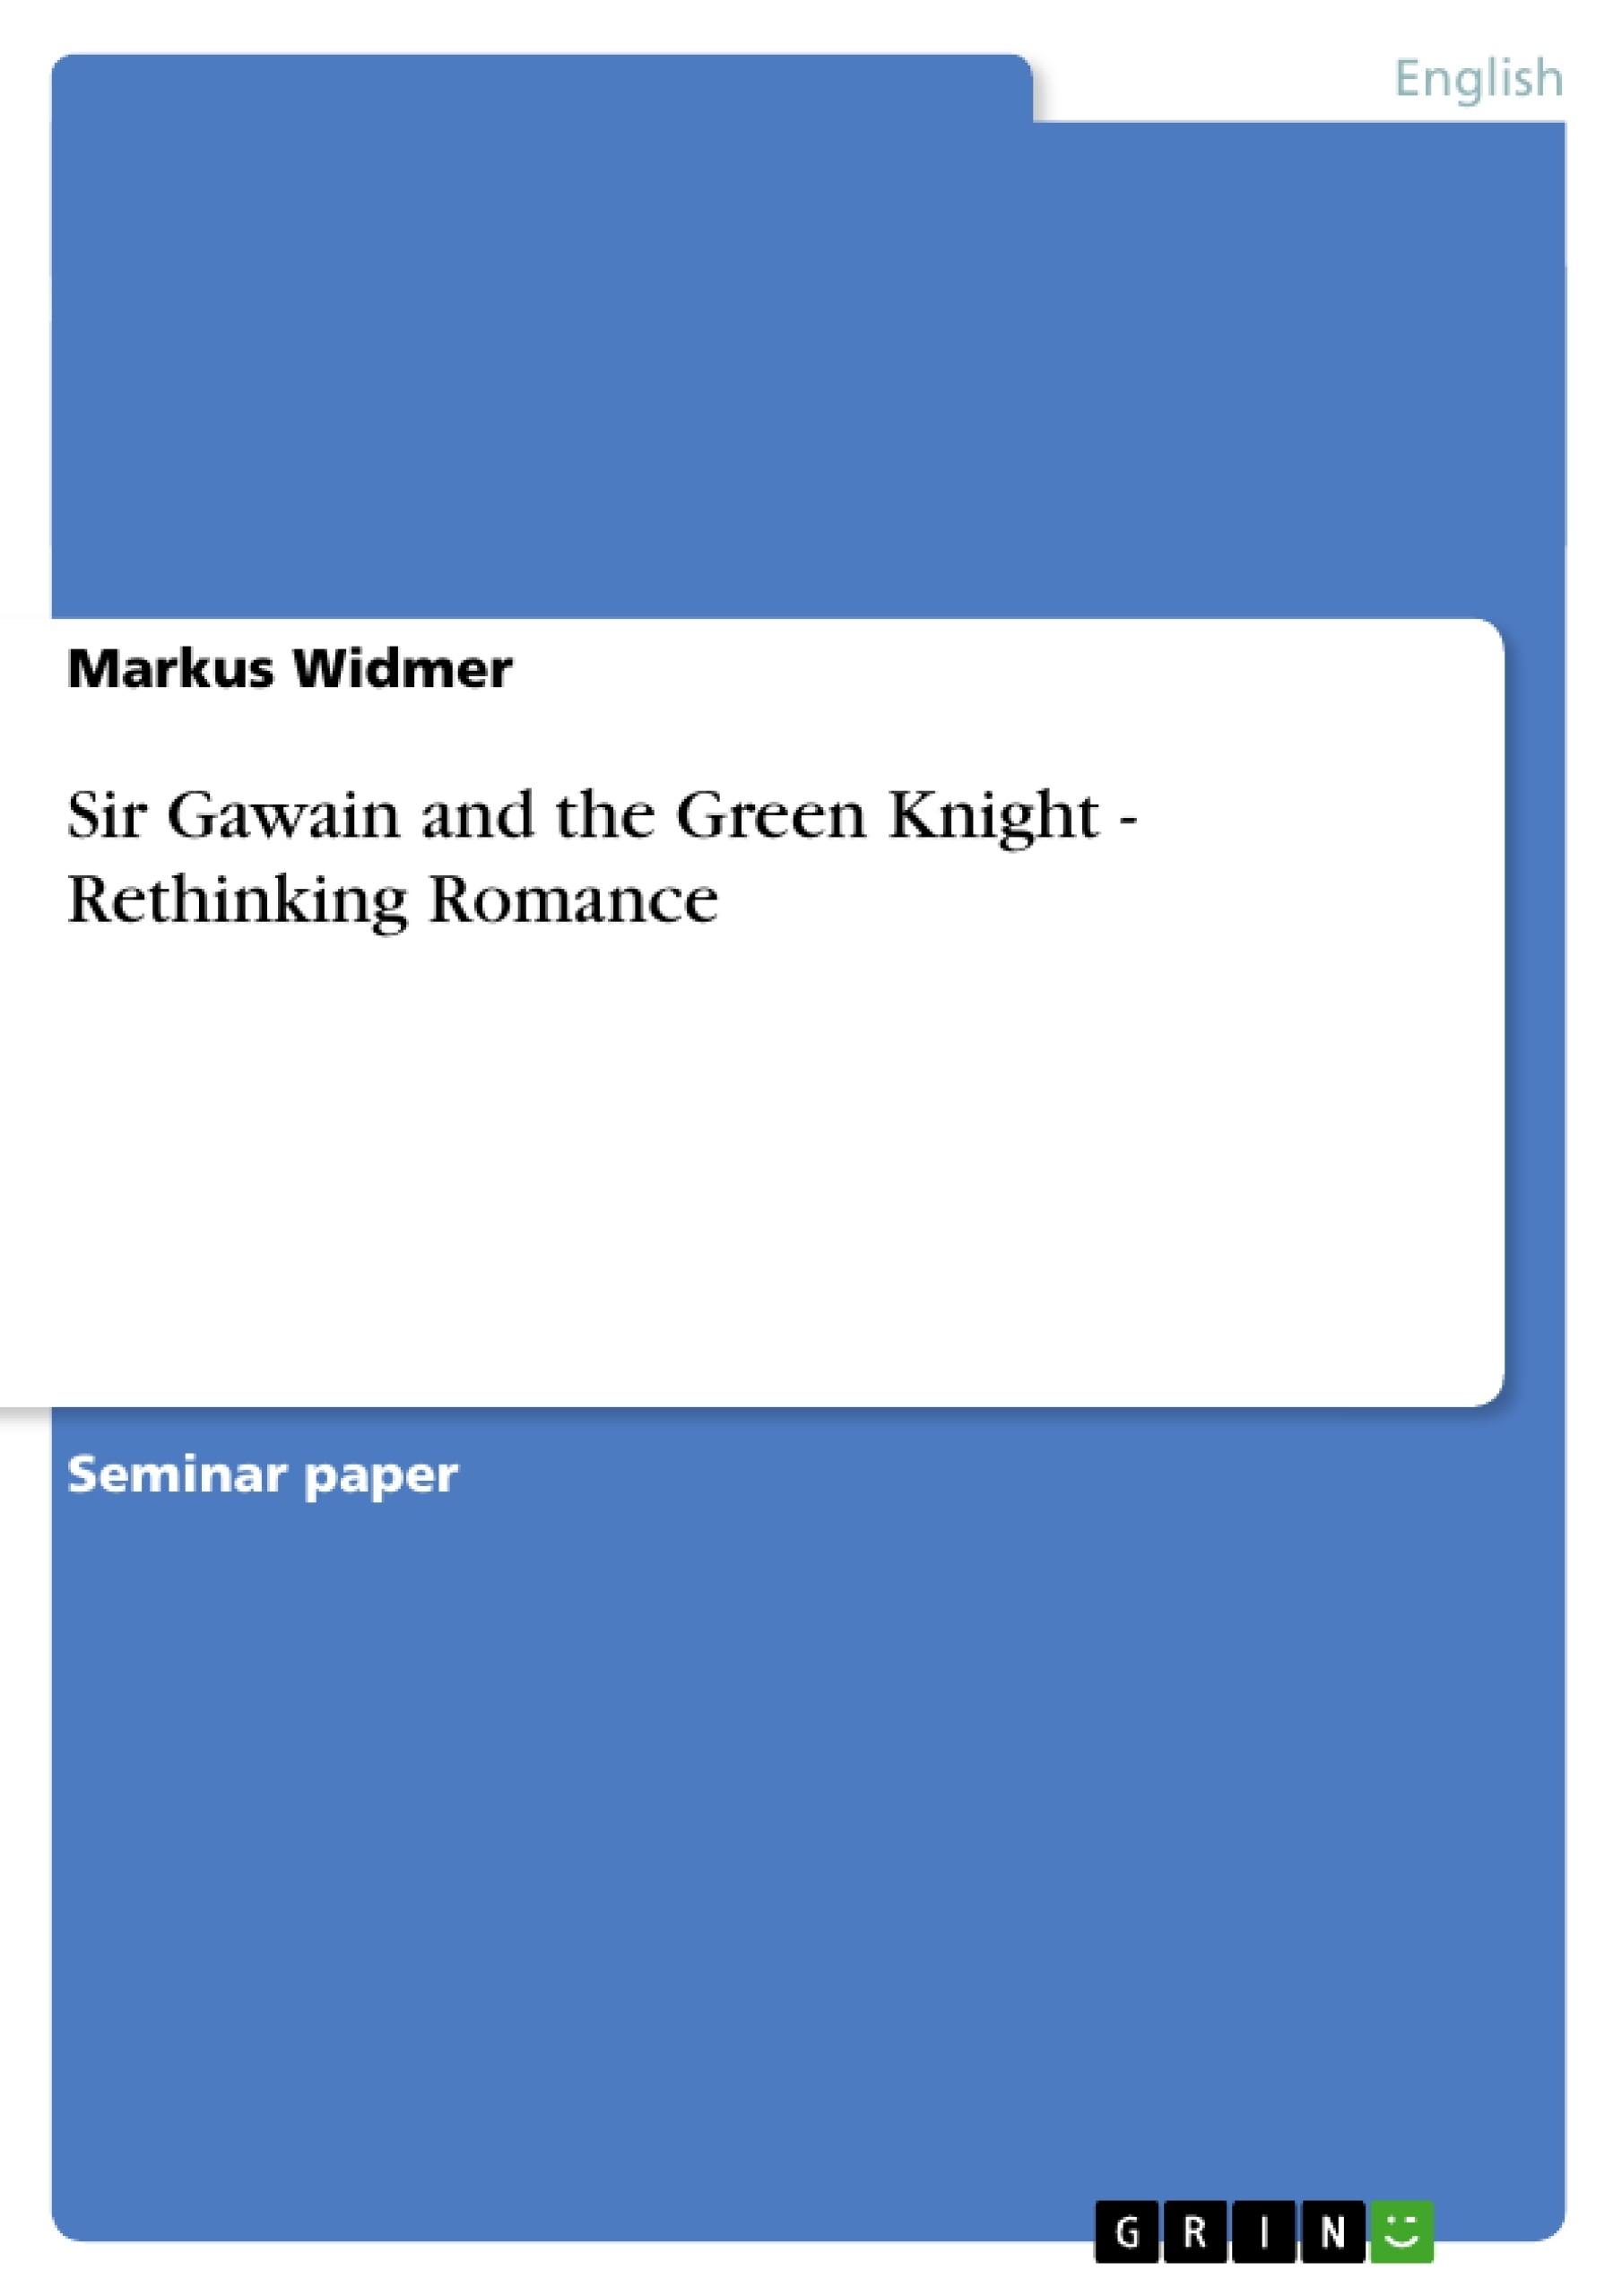 sir gawain and the green knight rethinking r ce publish upload your own papers earn money and win an iphone 7